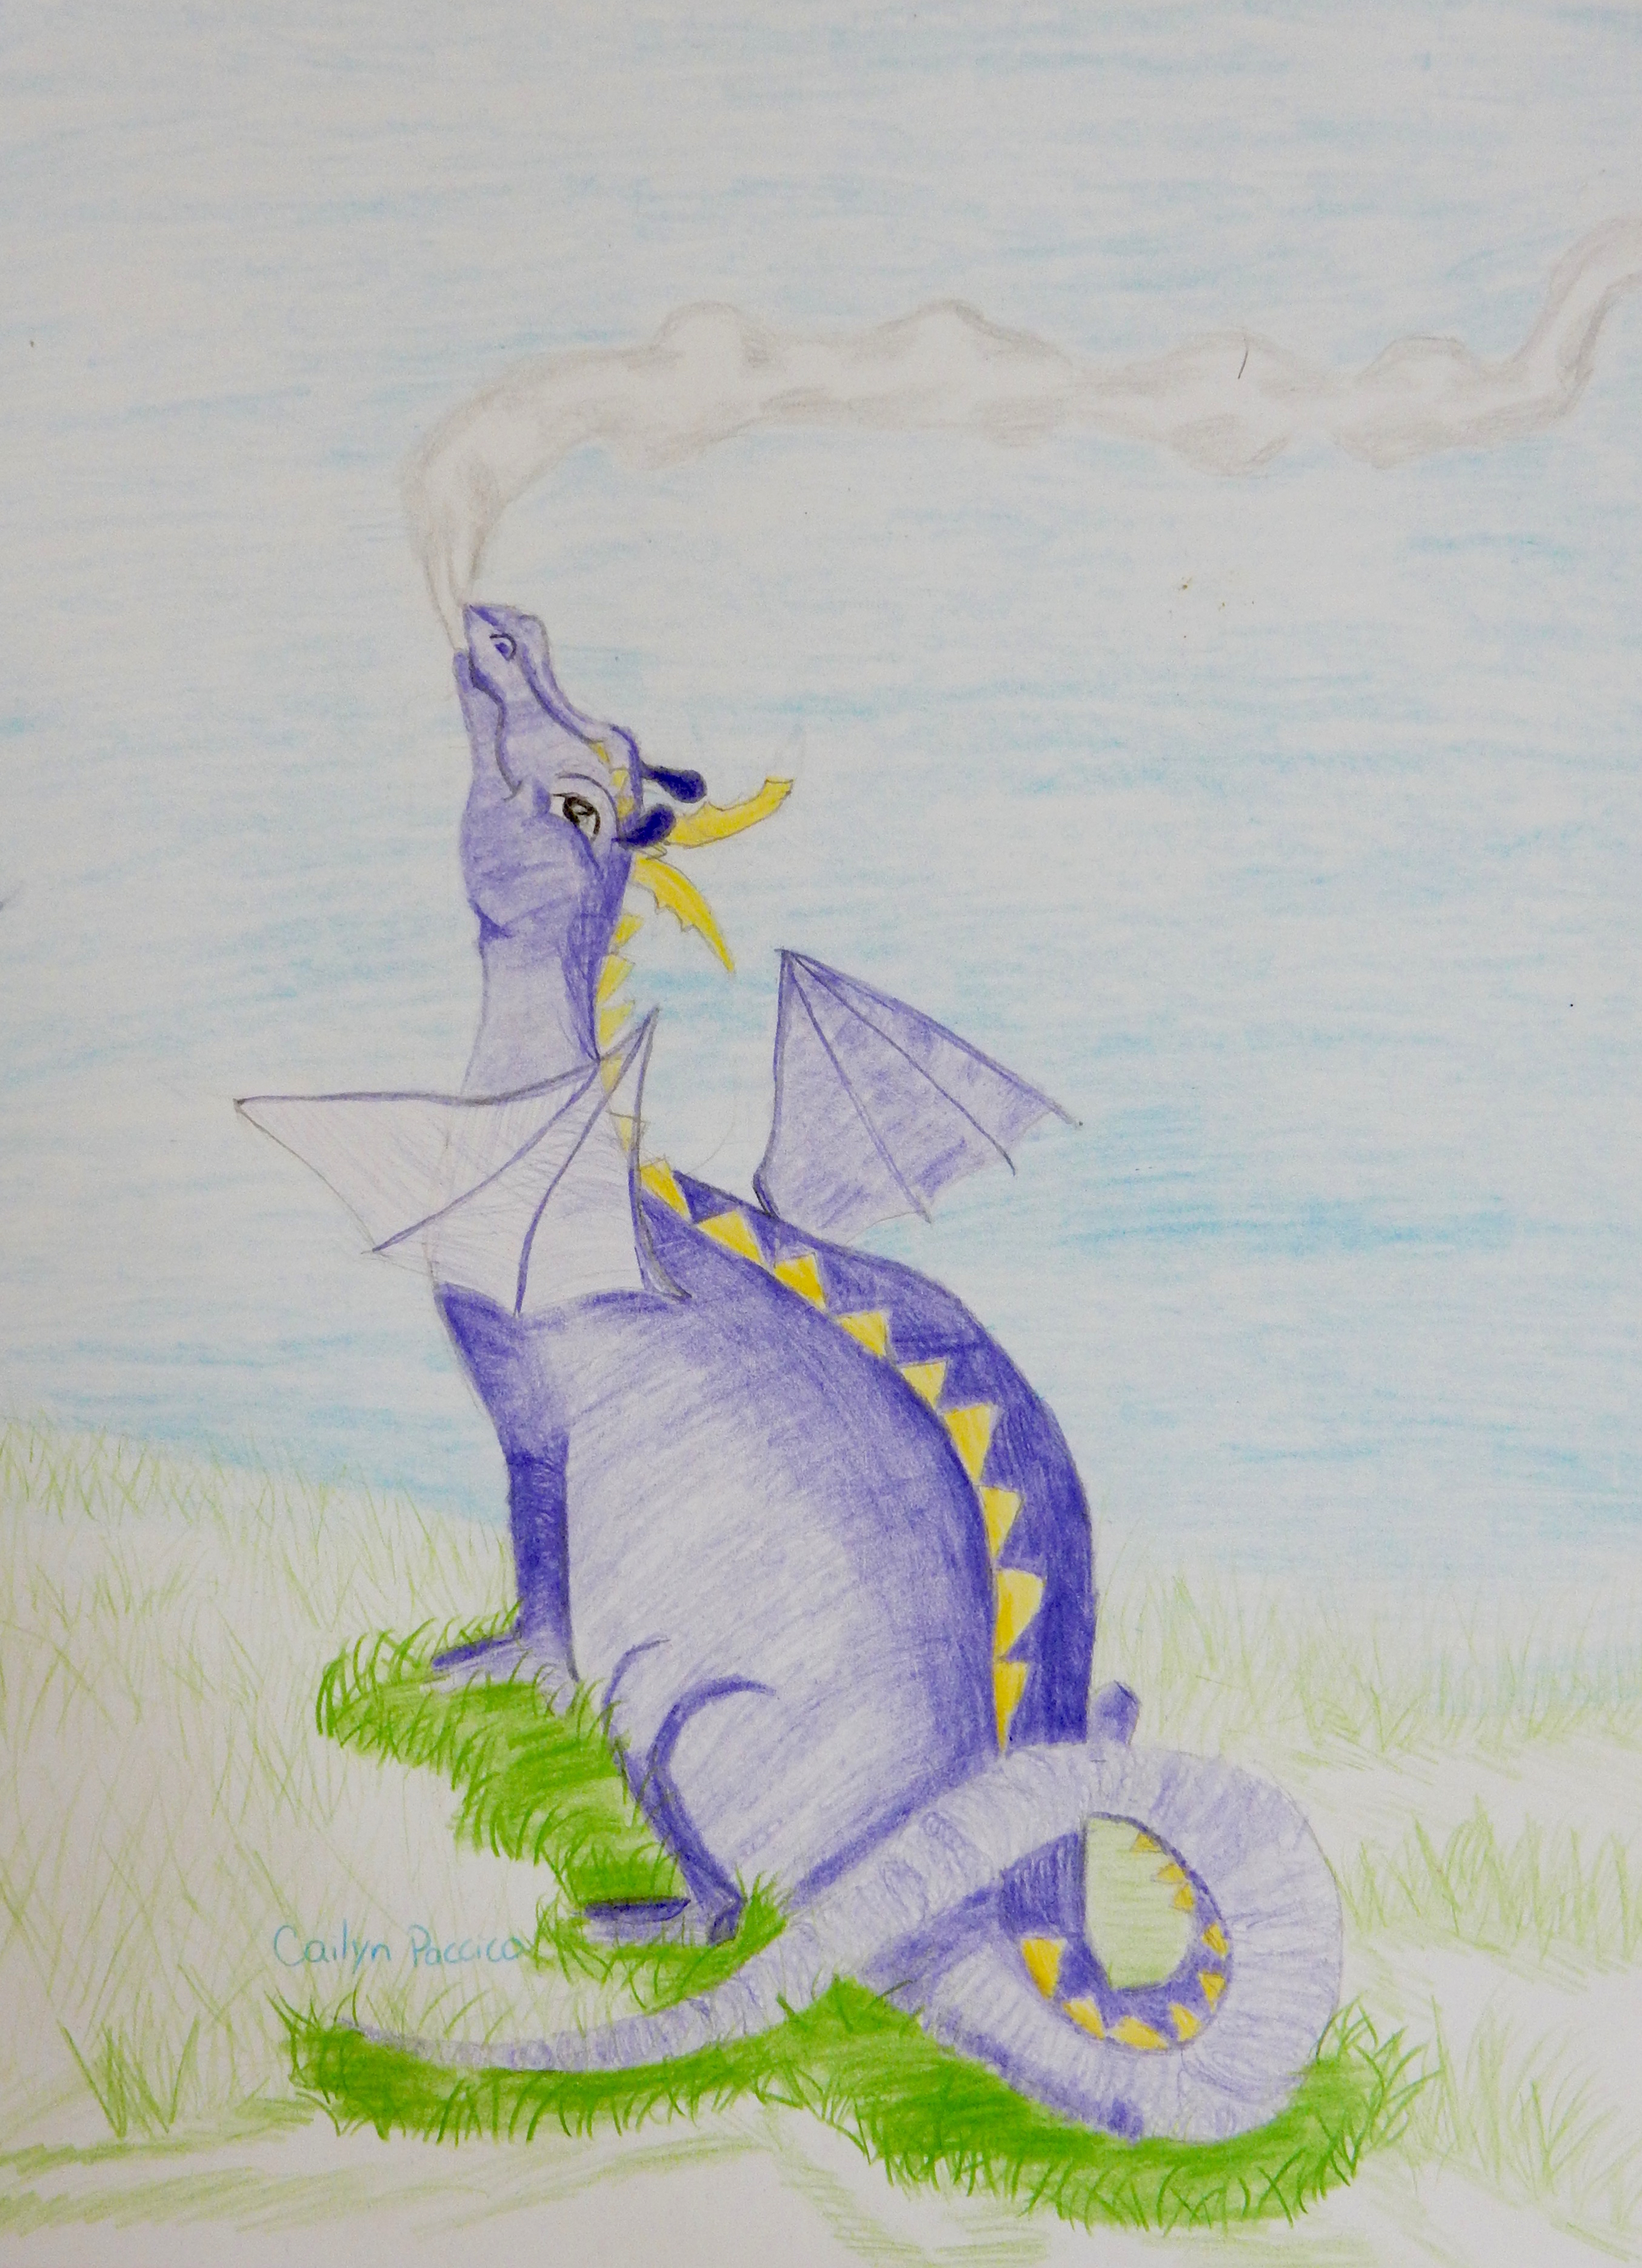 Cailyn Paccico.colored pencil